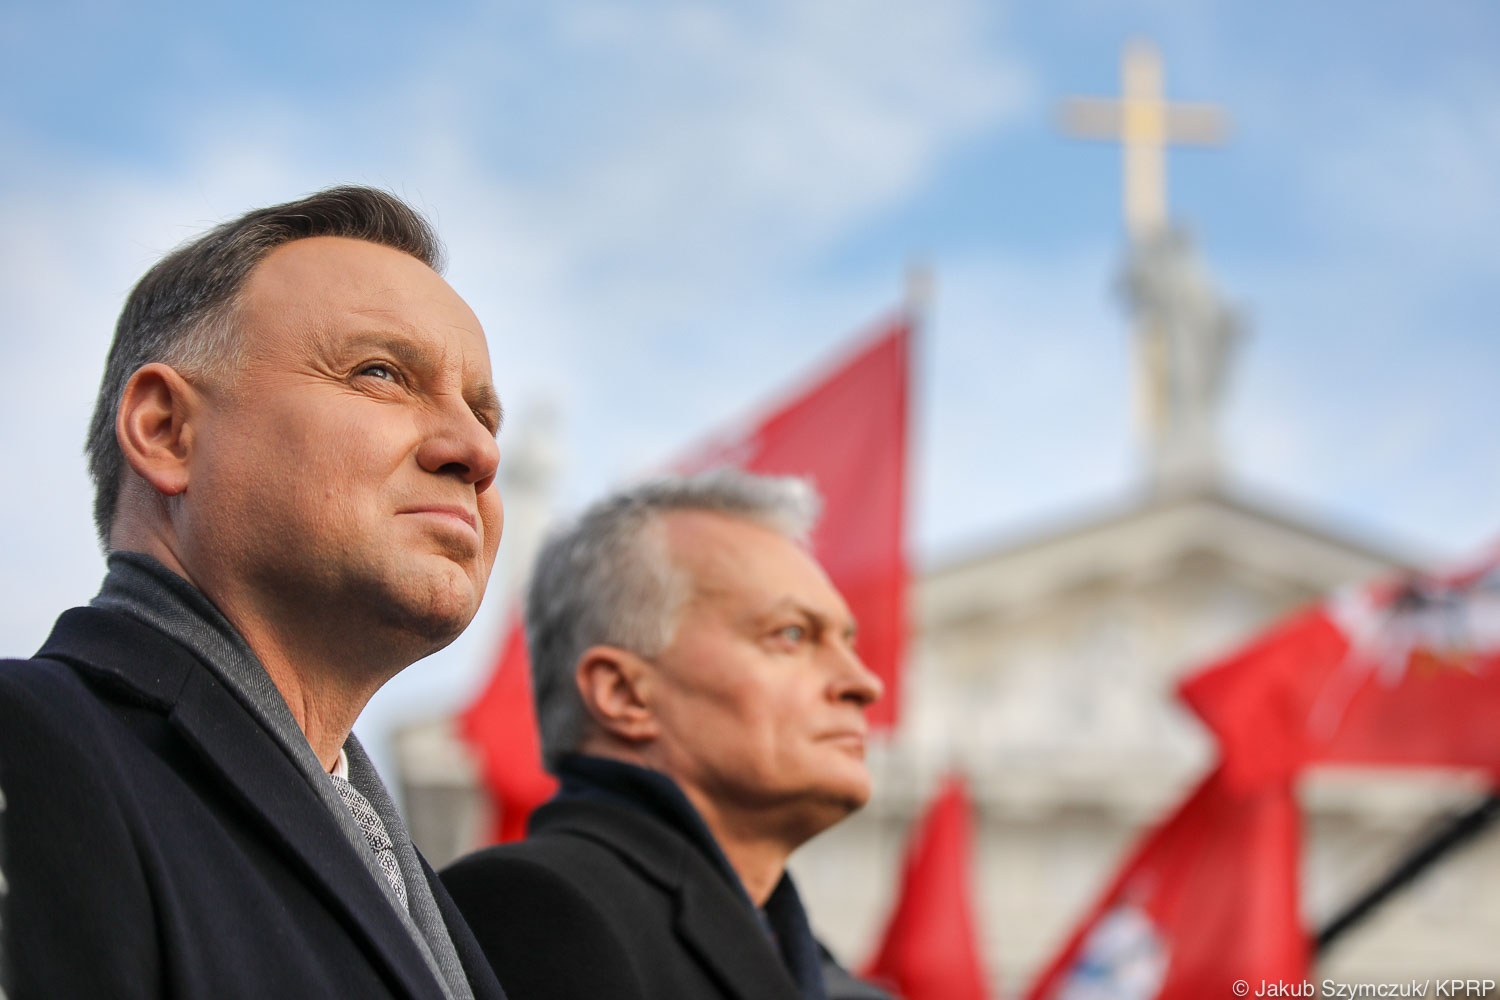 WI Daily News – Statement by Presidents Andrzej Duda and Gitanas Nausėda on situation in Belarus